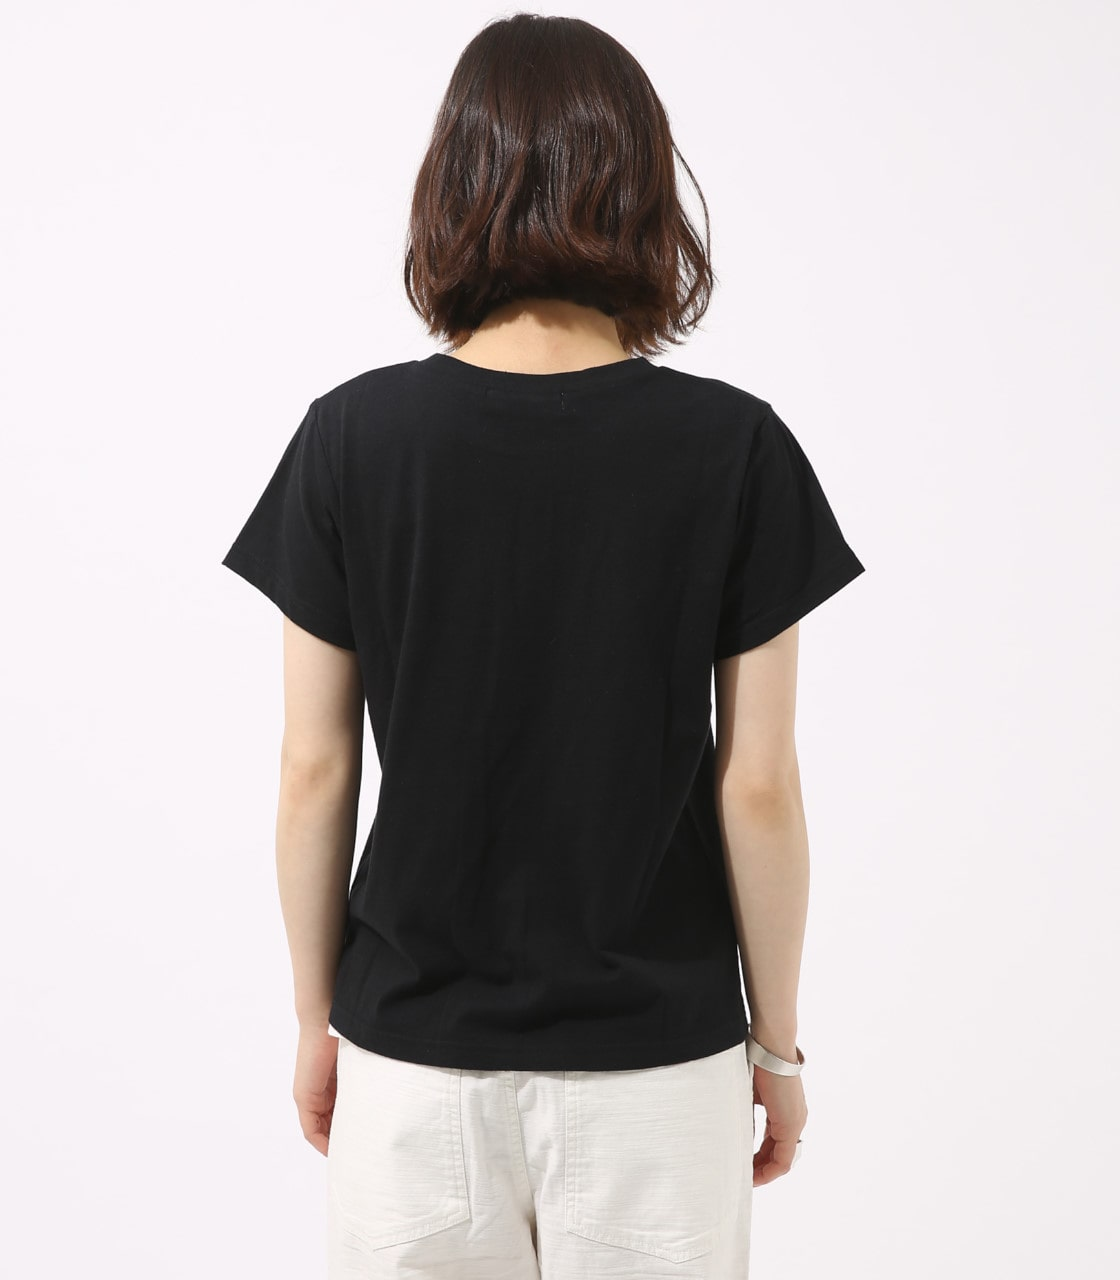 【AZUL BY MOUSSY】With you more TEE 詳細画像 BLK 7